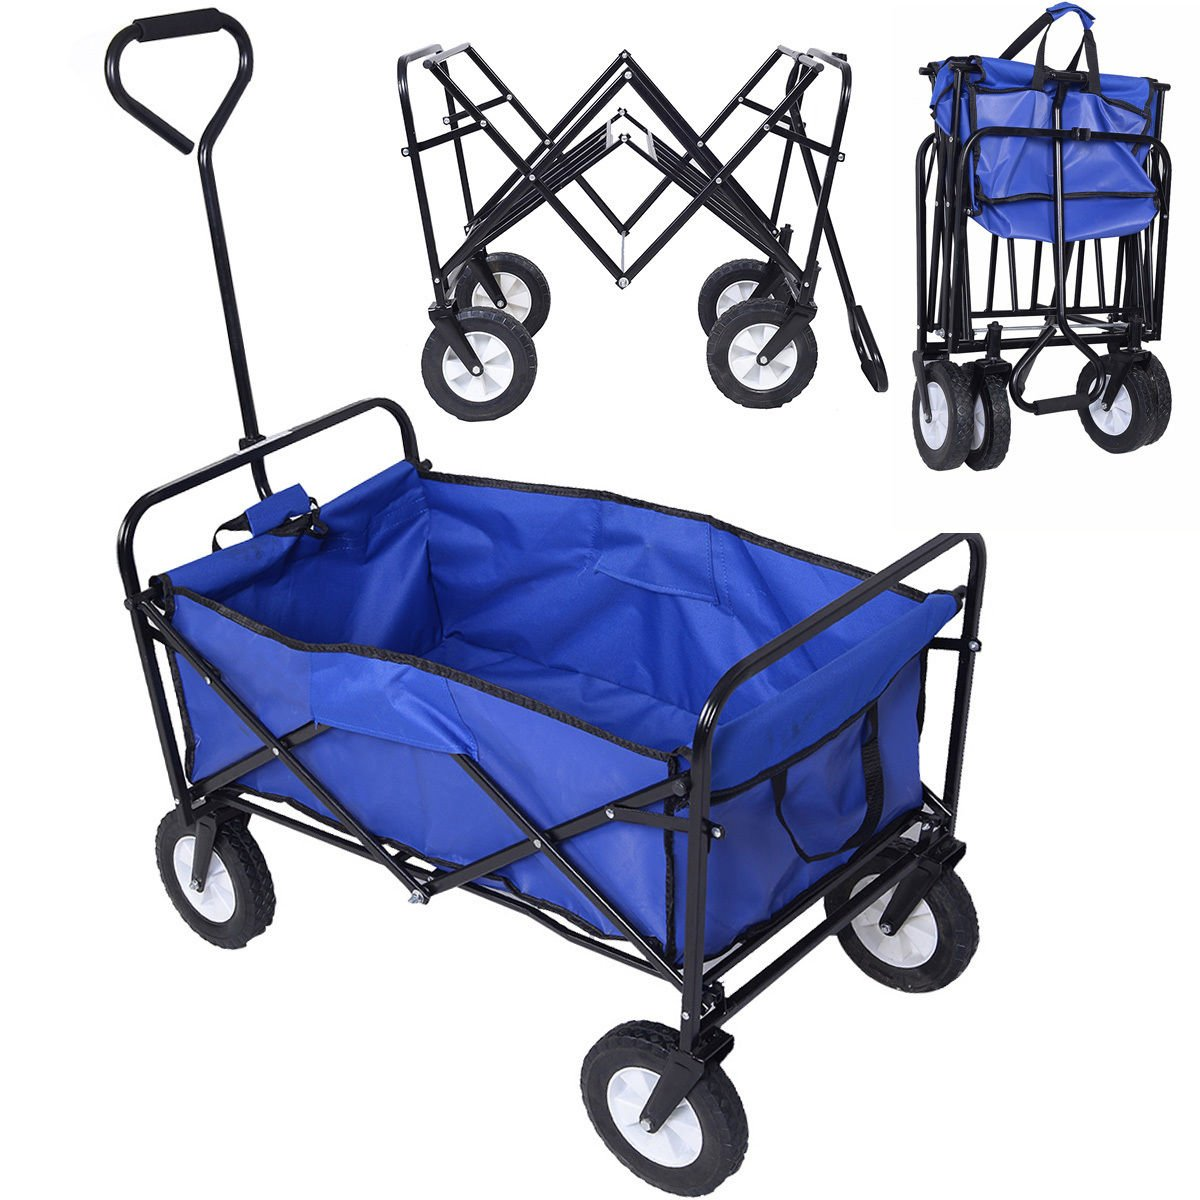 Collapsible Folding Wagon Cart Garden Buggy Shopping Beach Toy Sports Blue by JDM Auto Lights